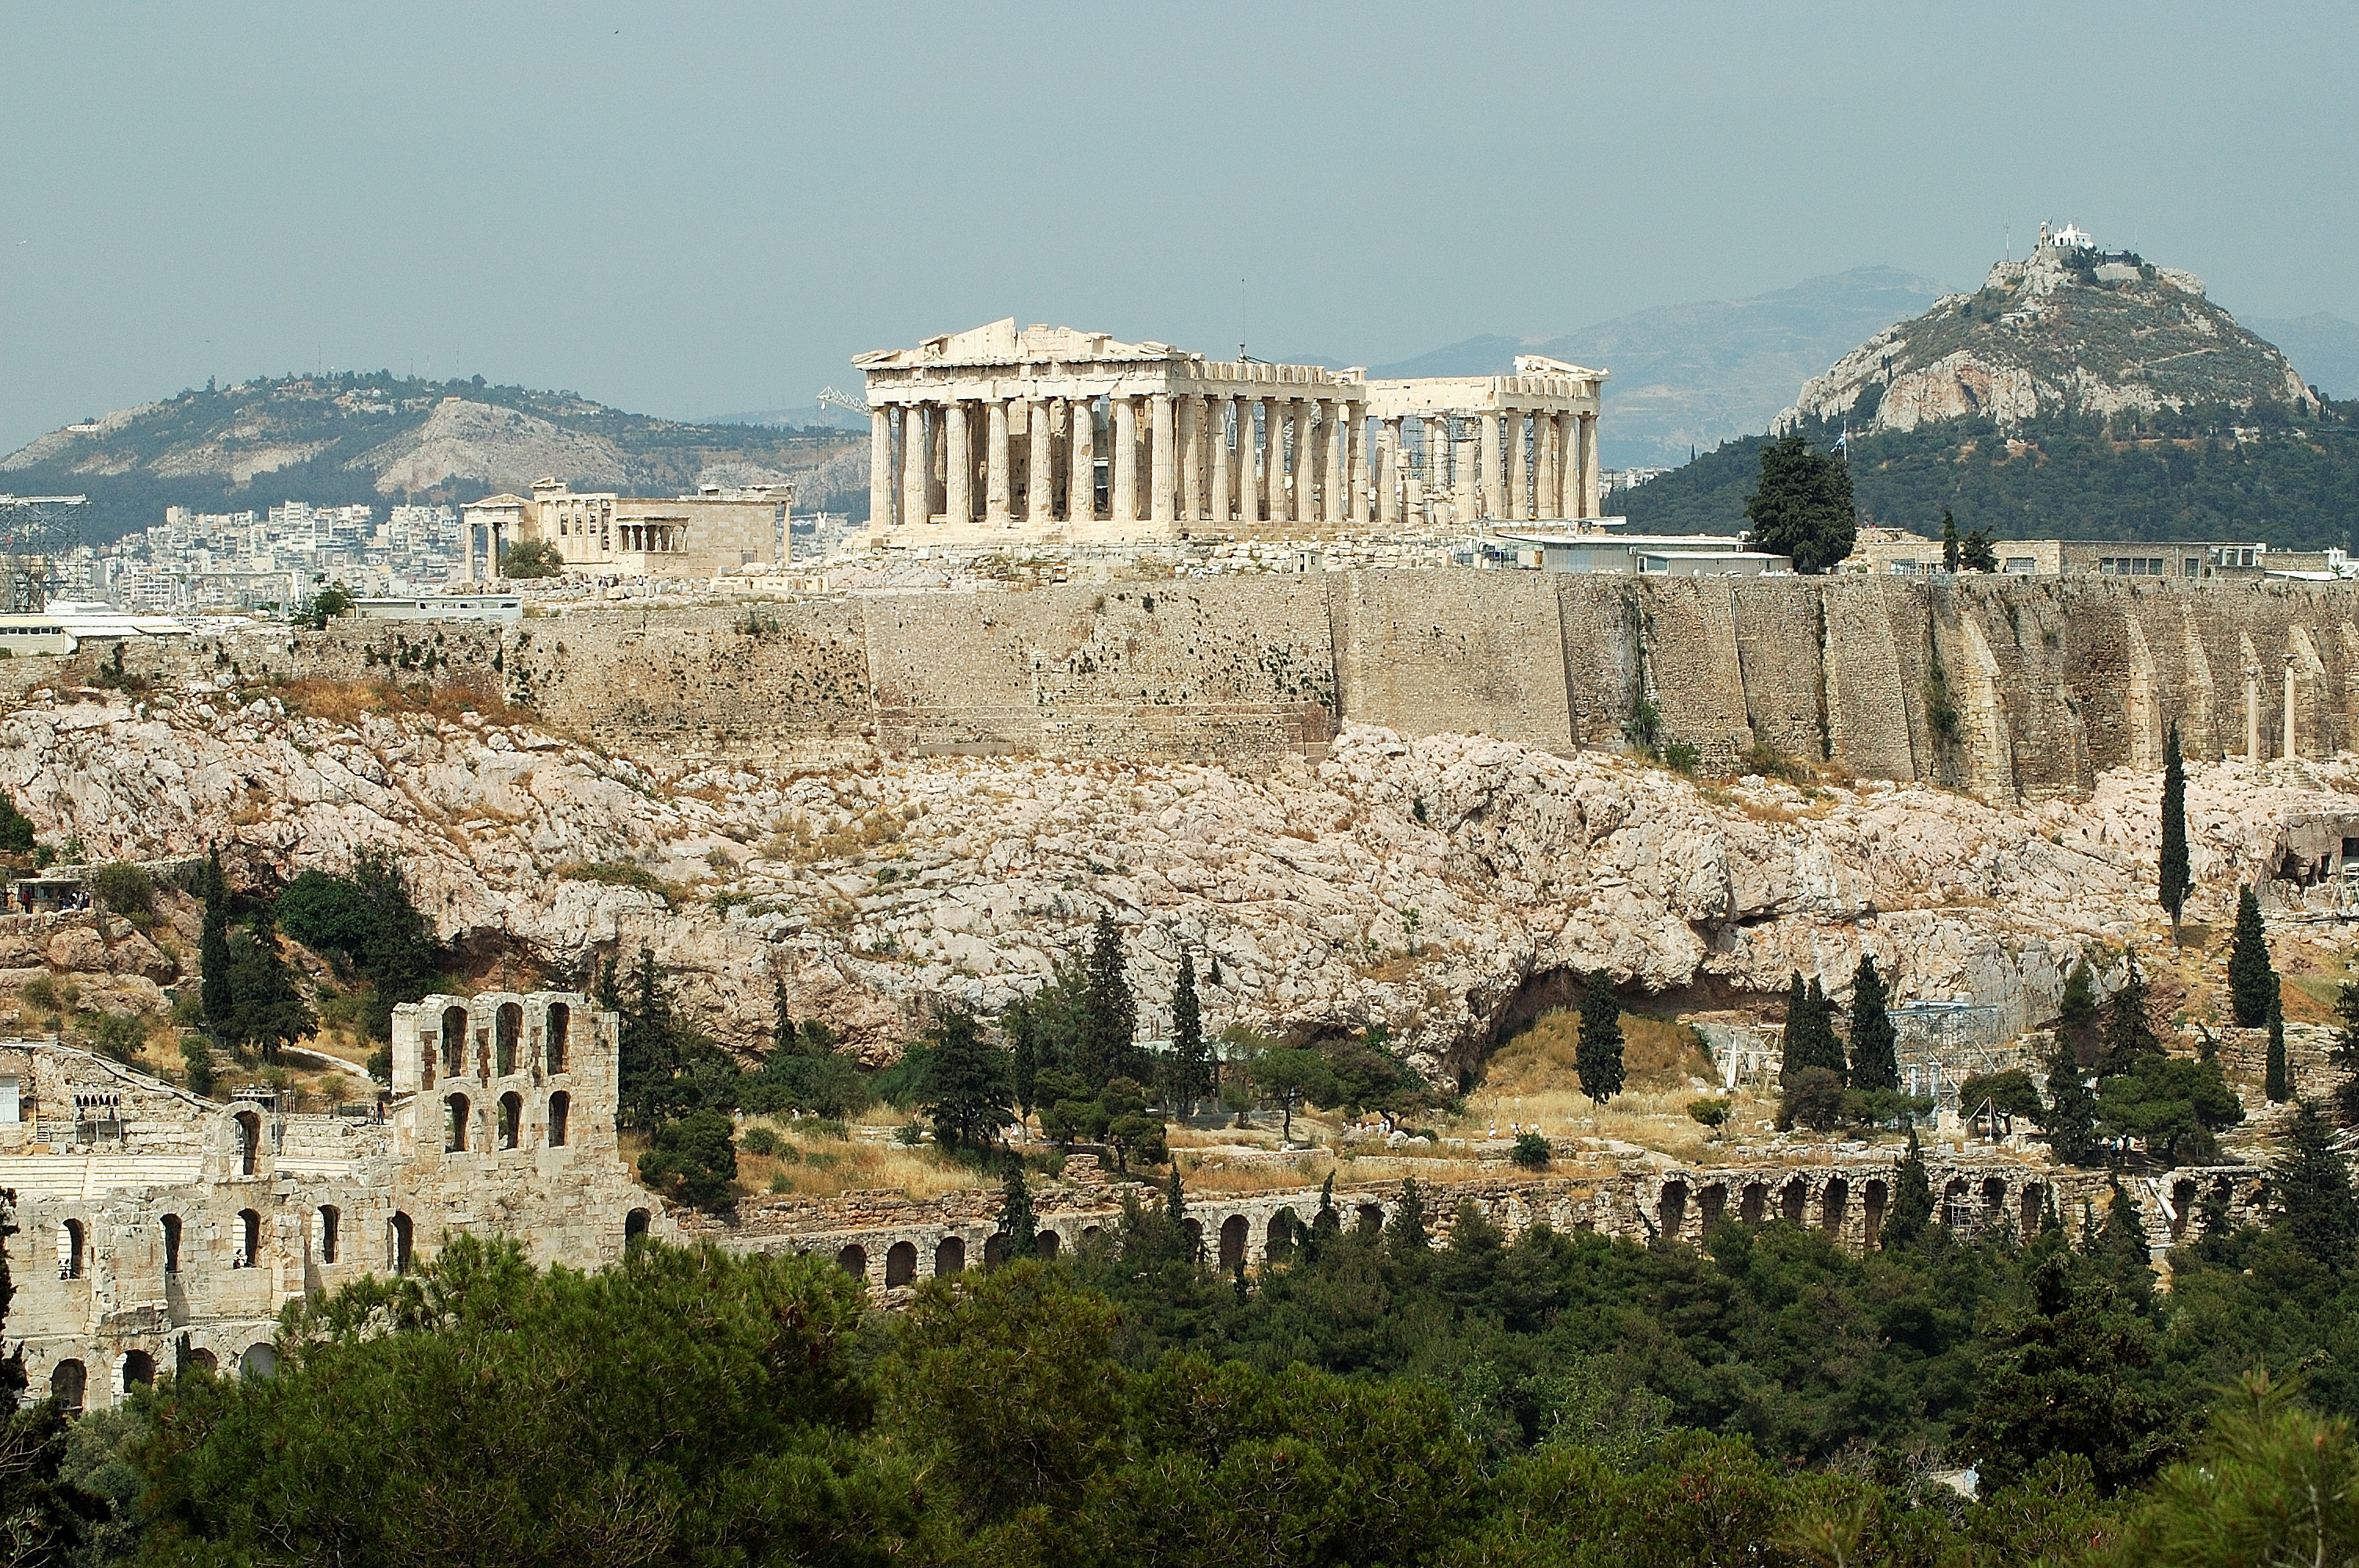 the construction of the acropolis of athens The acropolis of athens is an ancient citadel located on a high rocky outcrop above the city of athens, greece, and contains the remains of several ancient buildings of great architectural and historic significance, the most famous being the parthenon while there is evidence that the hill was.